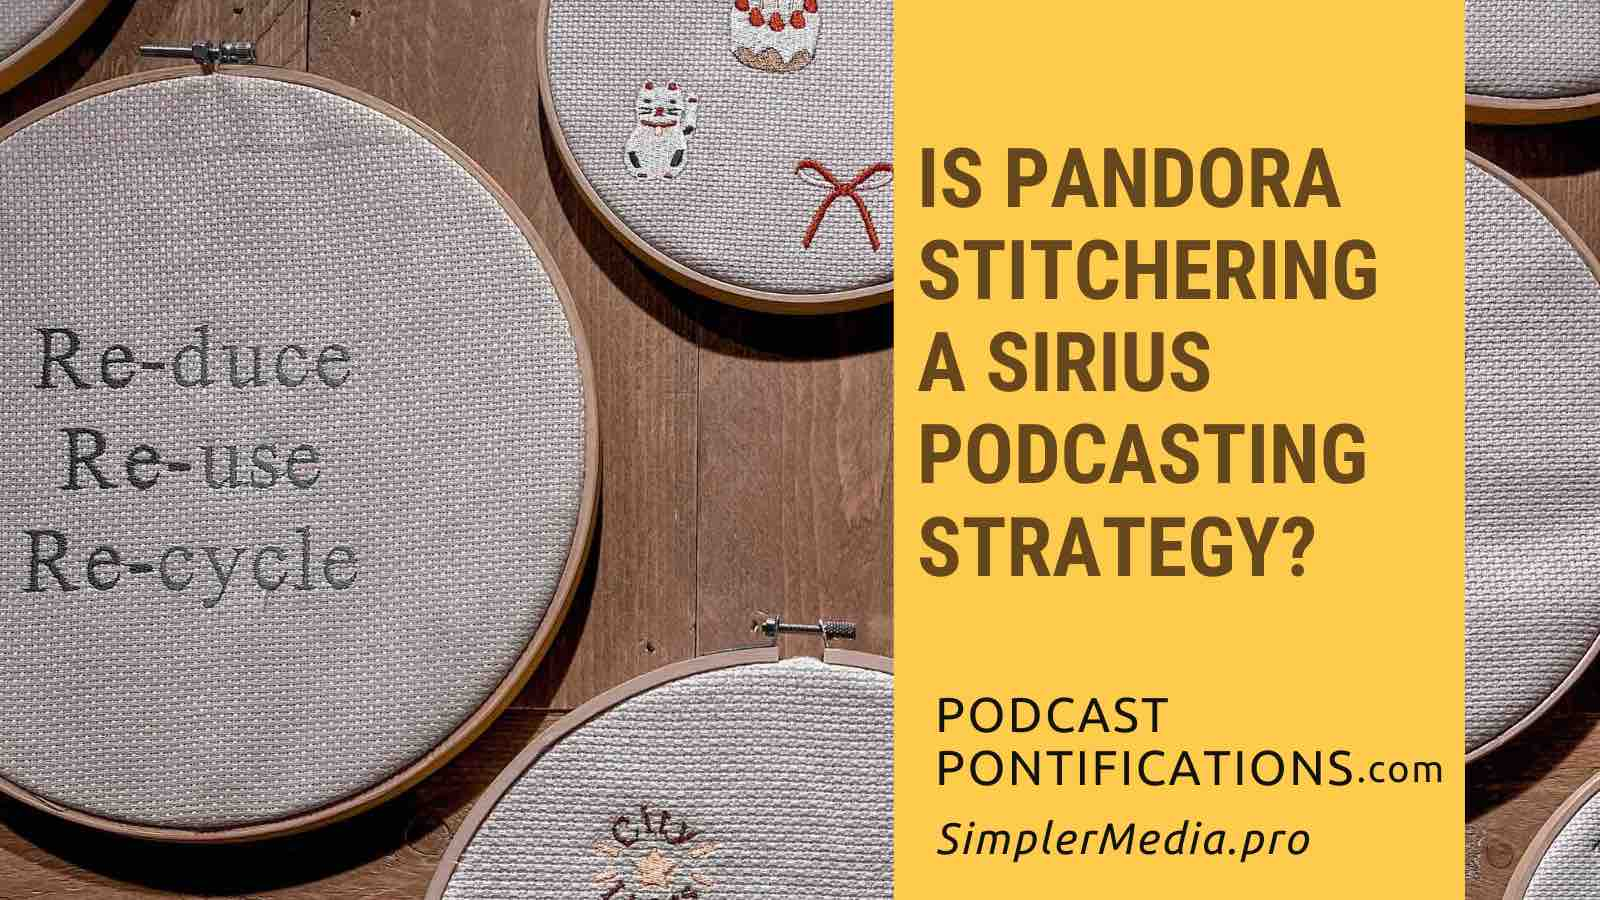 Is Pandora Stitchering A Sirius Podcasting Strategy?